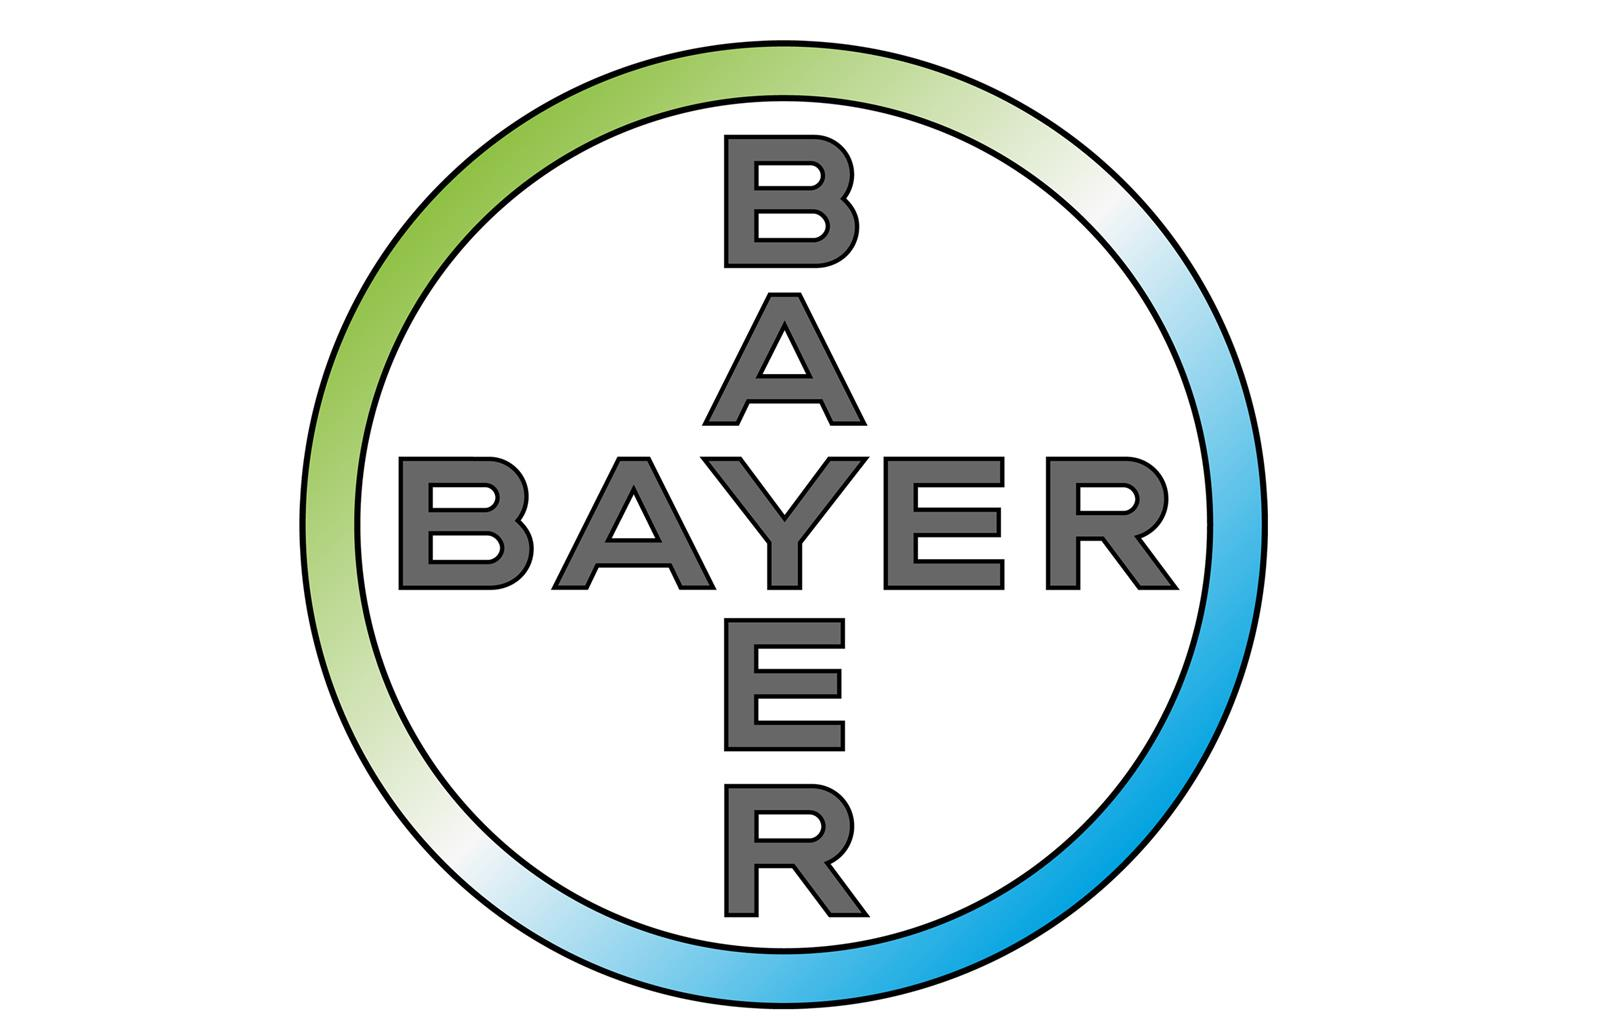 Bayer Hopes To Acquire Monsanto